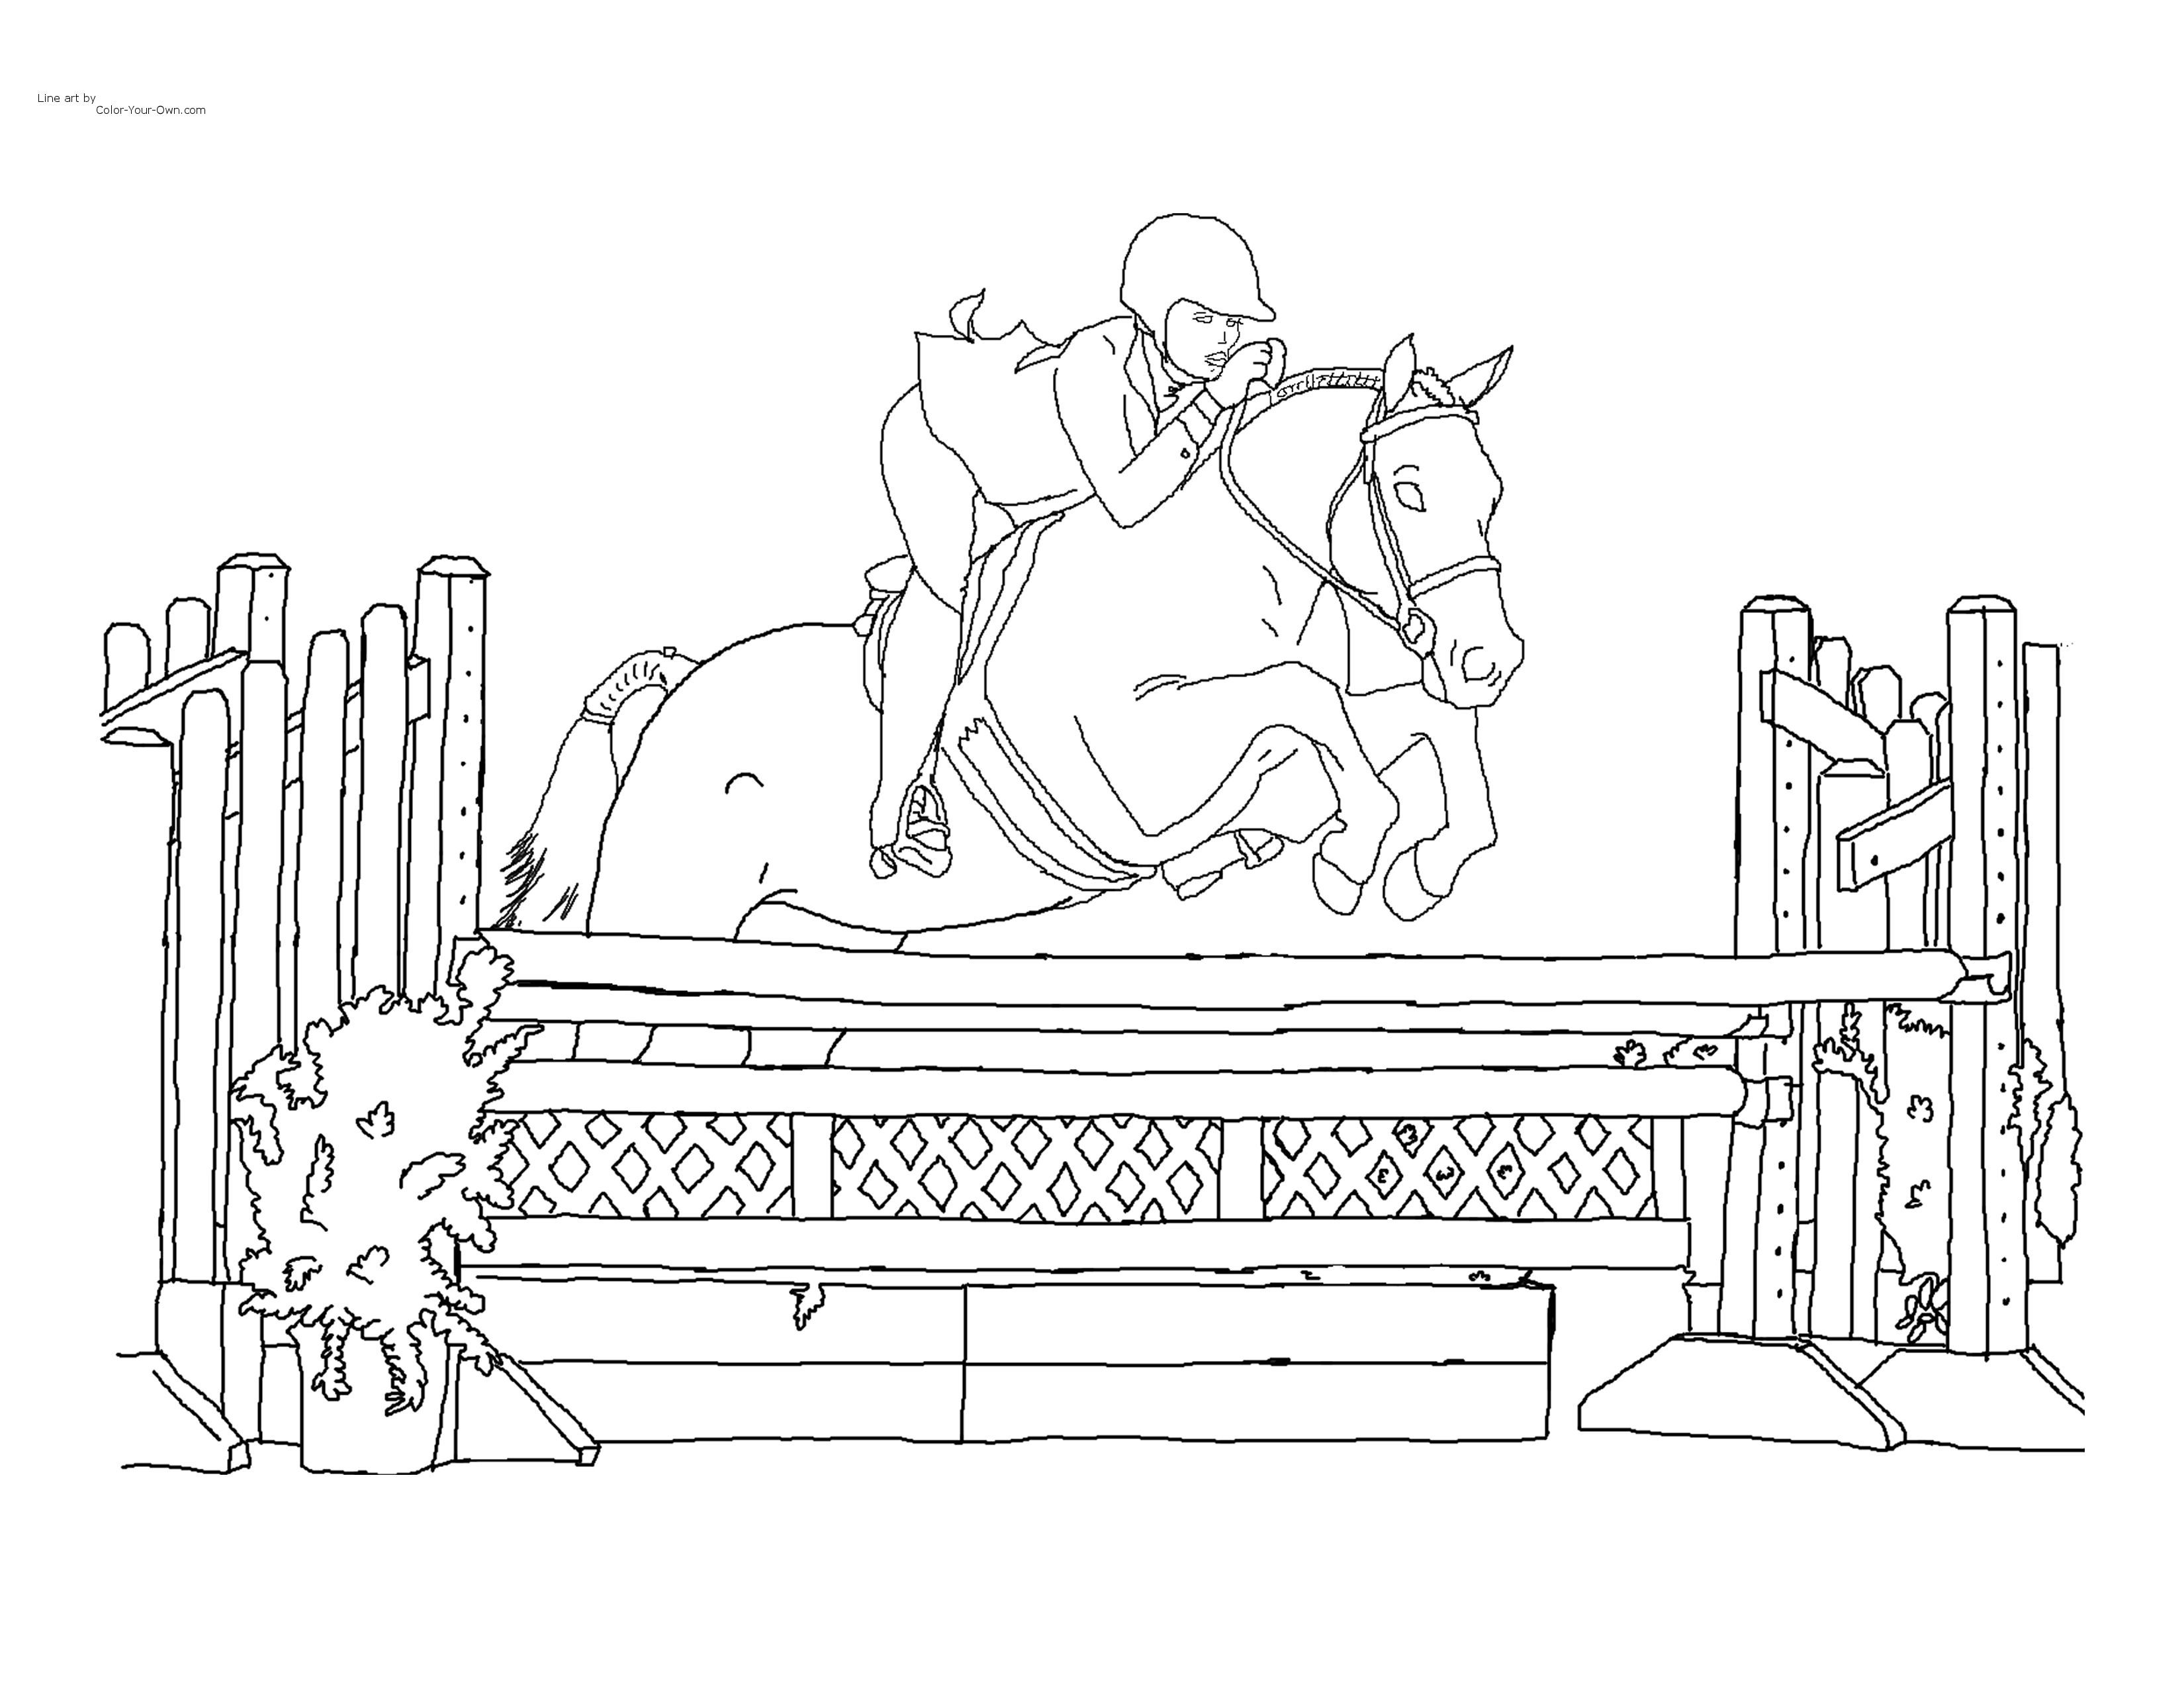 Free Horse Pictures To Color Click Here For The Free Printable Coloring Page For 8 5 By 11 Inch Horse Coloring Pages Horse Coloring Animal Coloring Pages